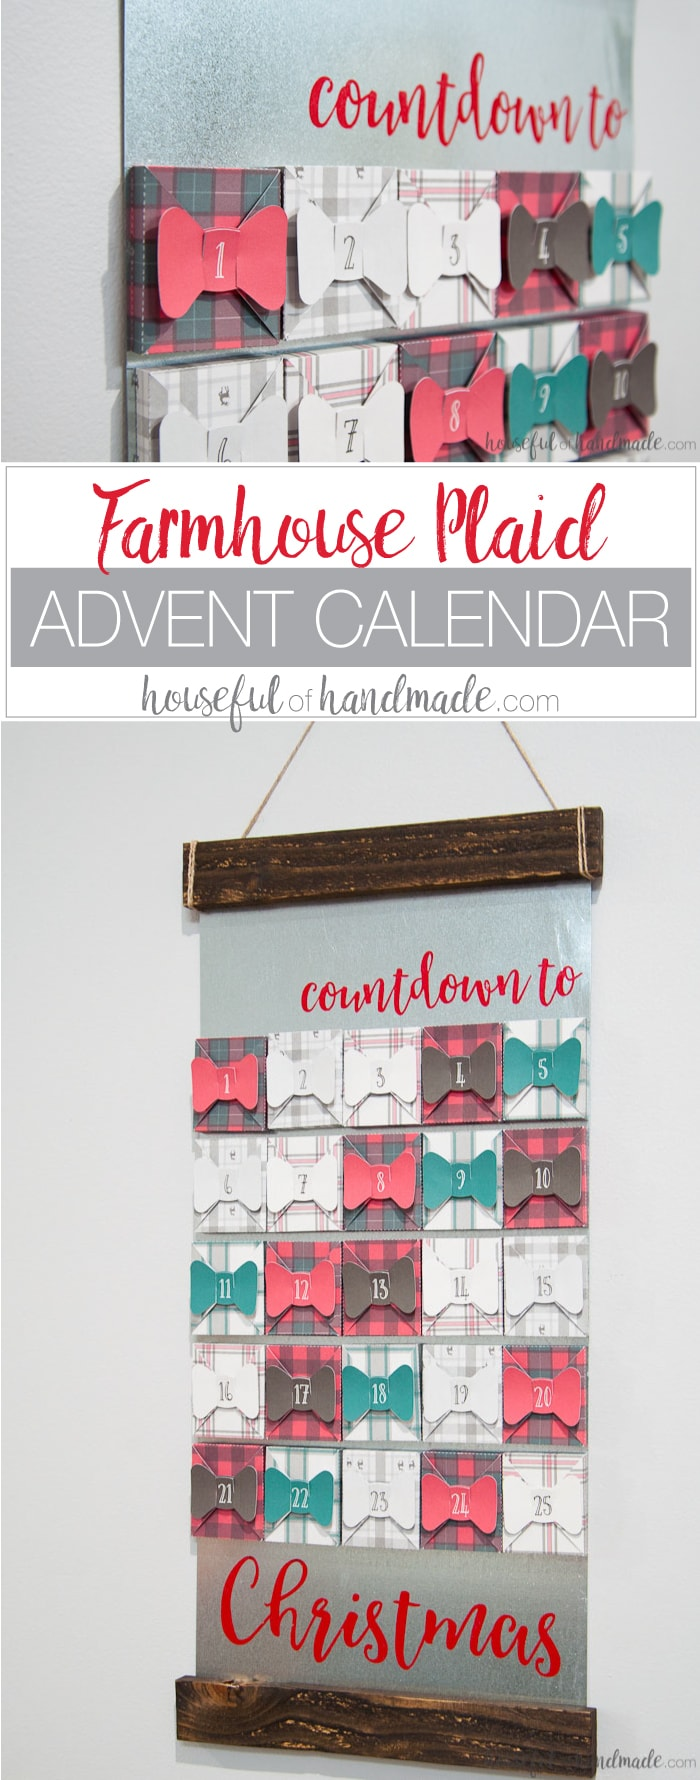 I absolutely love this farmhouse style advent calendar! If you love buffalo check and tartan plaid this is the advent calendar for you. Make 25 plaid boxes, sealed with a bow, to hold a surprise or activity for every day in December until Christmas. Get all the details for how to make a farmhouse plaid Christmas advent calendar today! | Housefulofhandmade.comI absolutely love this farmhouse style advent calendar! If you love buffalo check and tartan plaid this is the advent calendar for you. Make 25 plaid boxes, sealed with a bow, to hold a surprise or activity for every day in December until Christmas. Get all the details for how to make a farmhouse plaid Christmas advent calendar today! | Housefulofhandmade.com